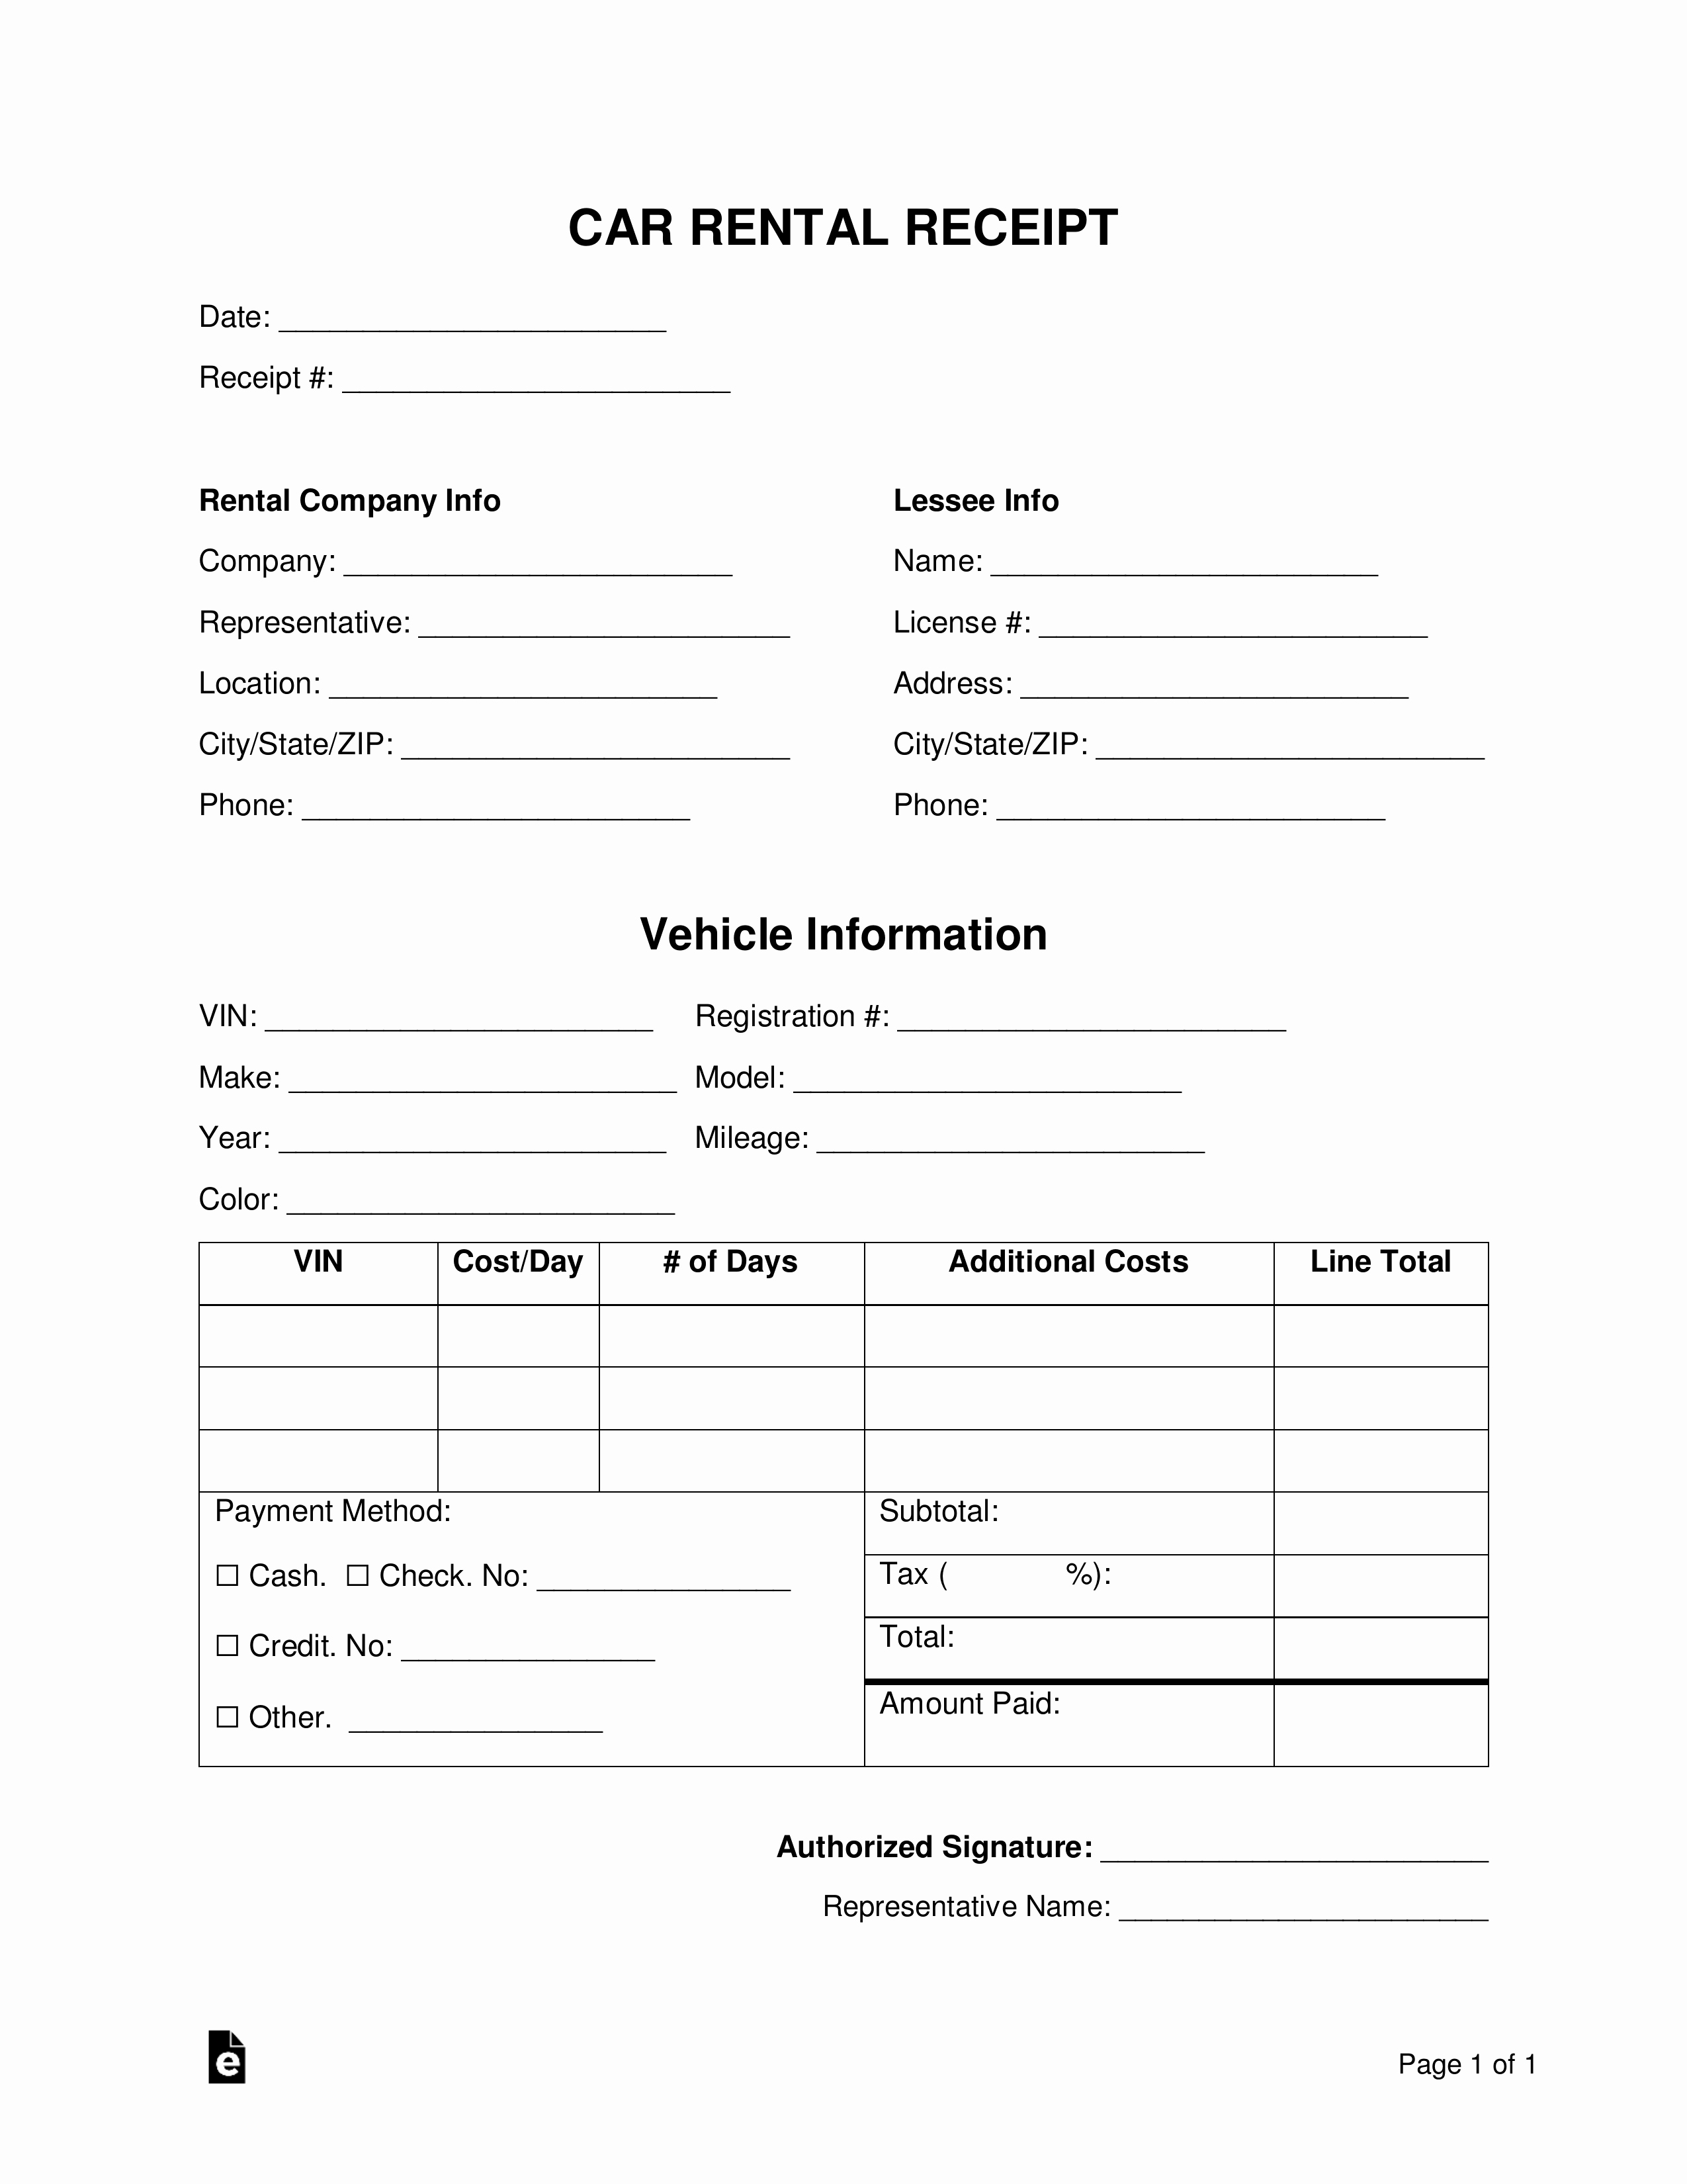 Rent Invoice Template Word Awesome Free Car Rental Receipt Template Word Pdf